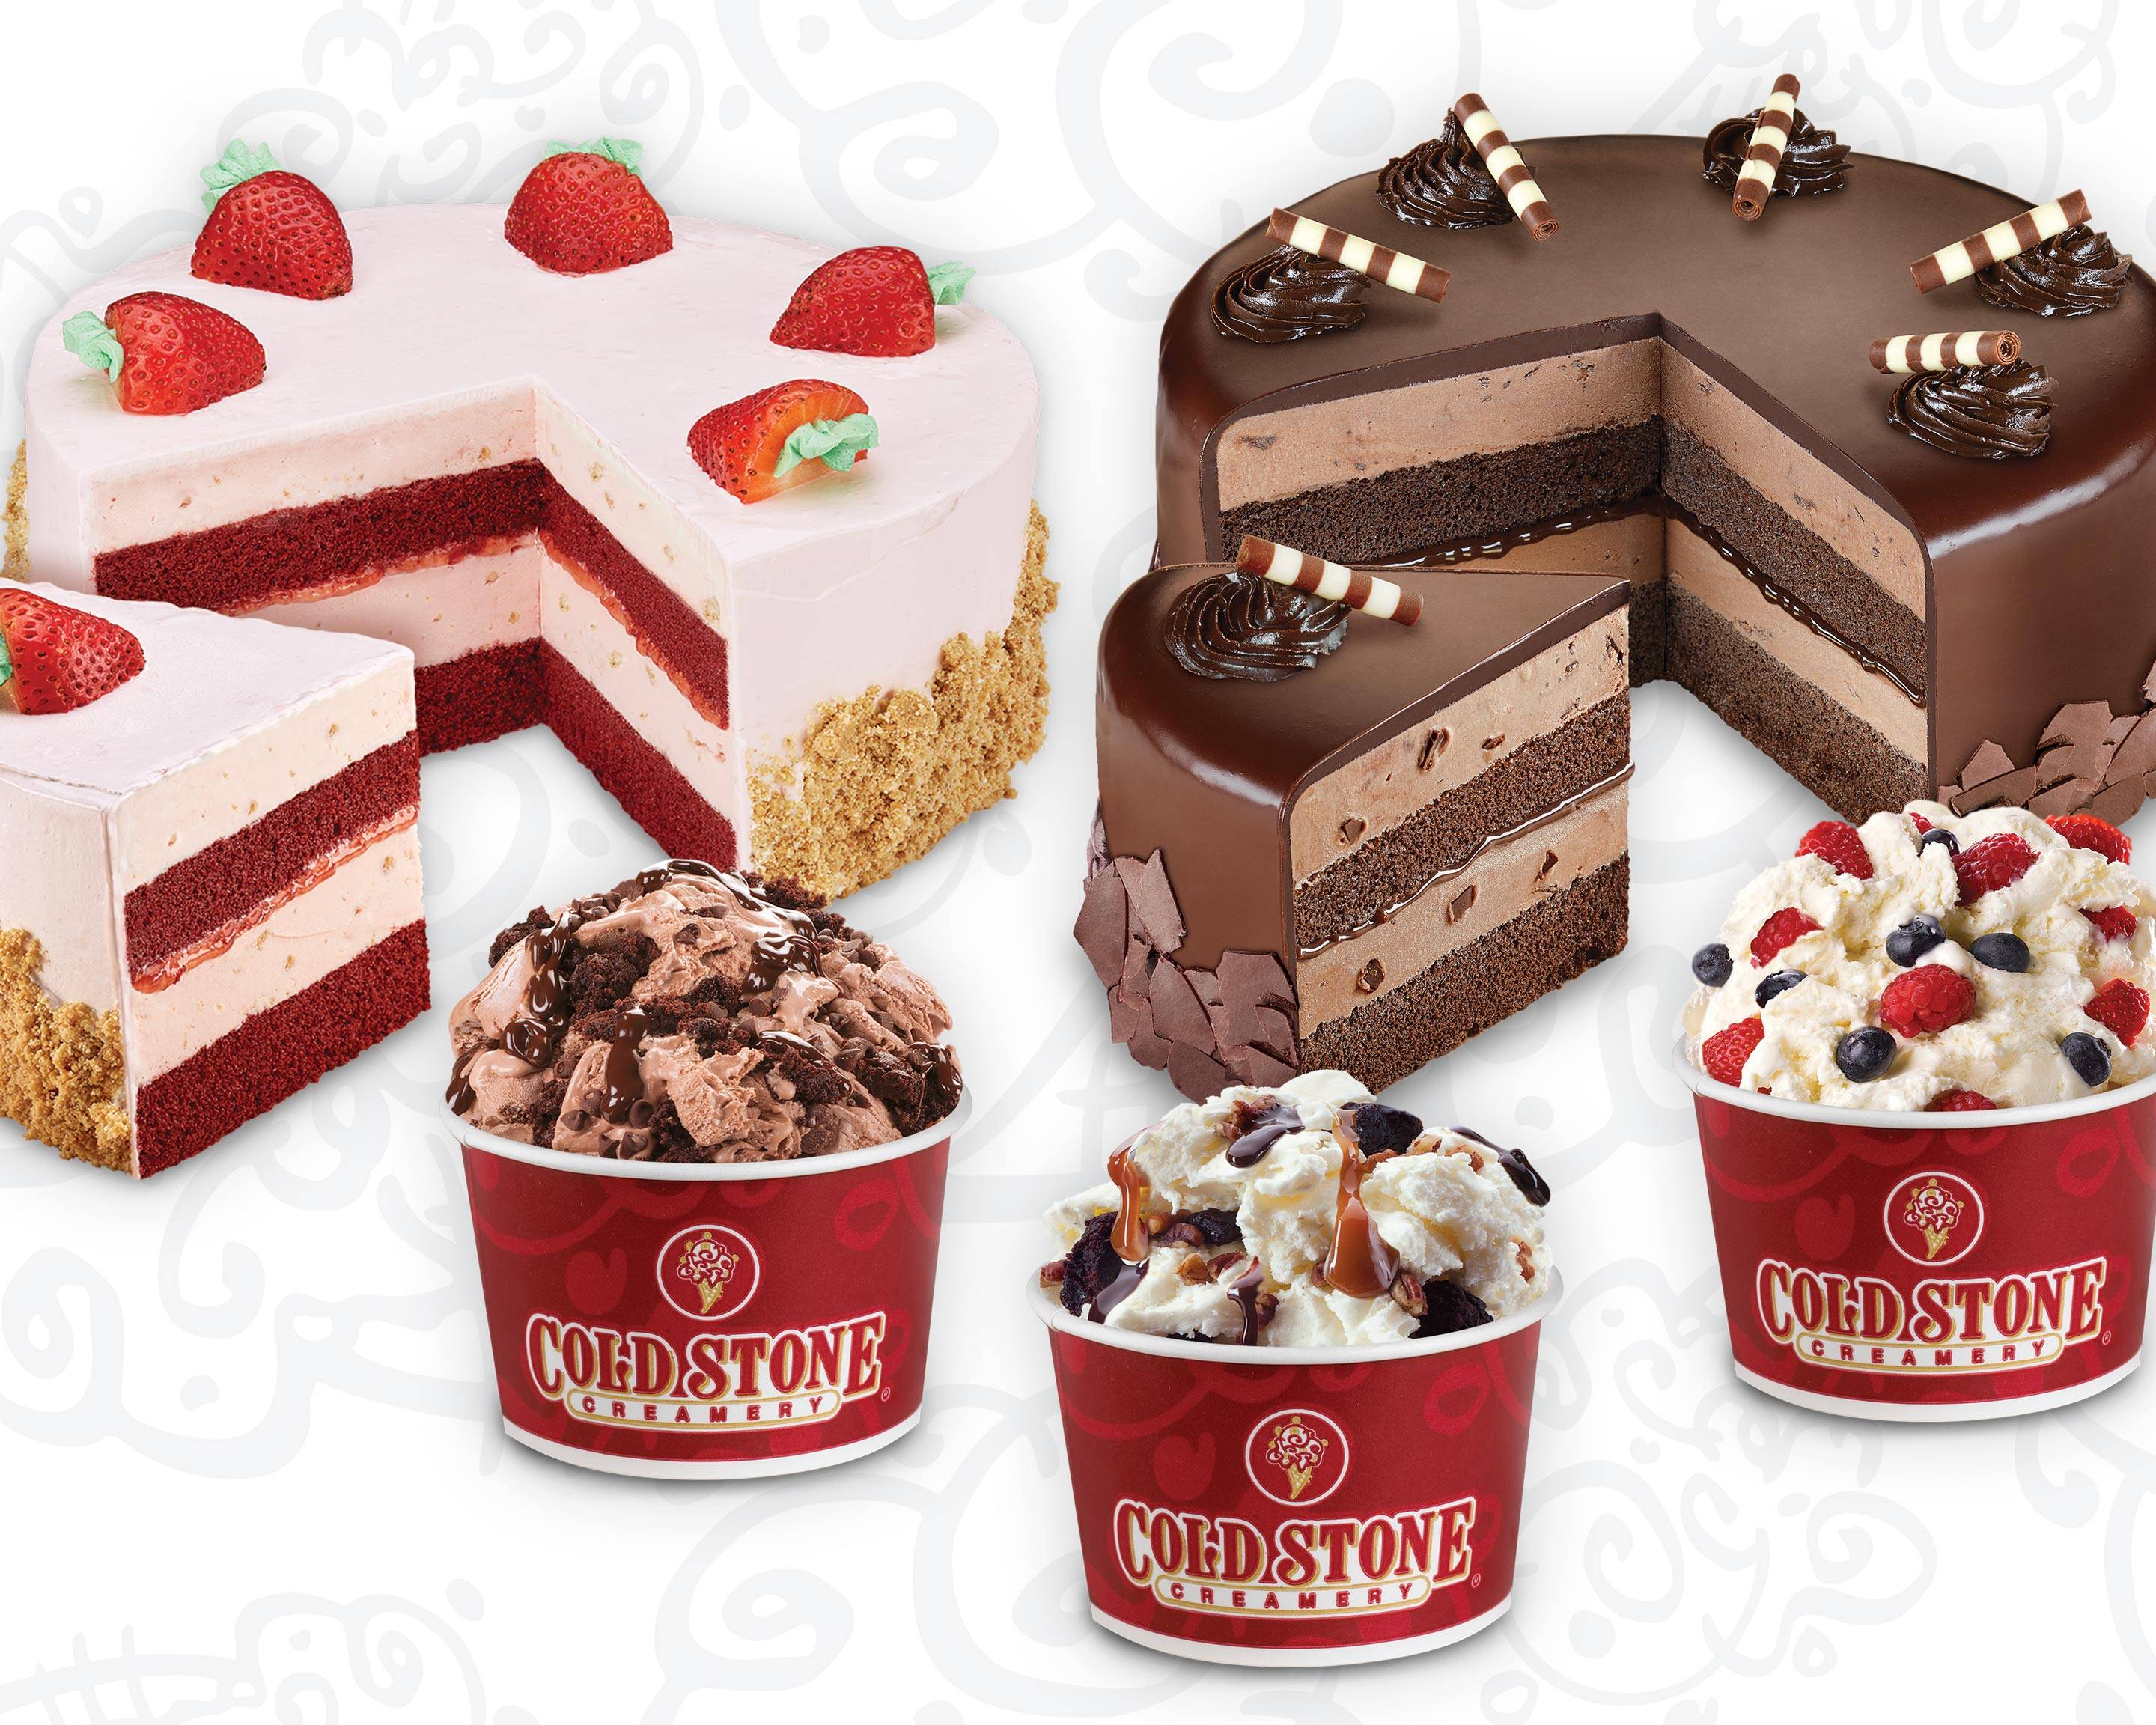 Marvelous Order Cold Stone Creamery 479 W Dussel Dr Delivery Online Birthday Cards Printable Opercafe Filternl